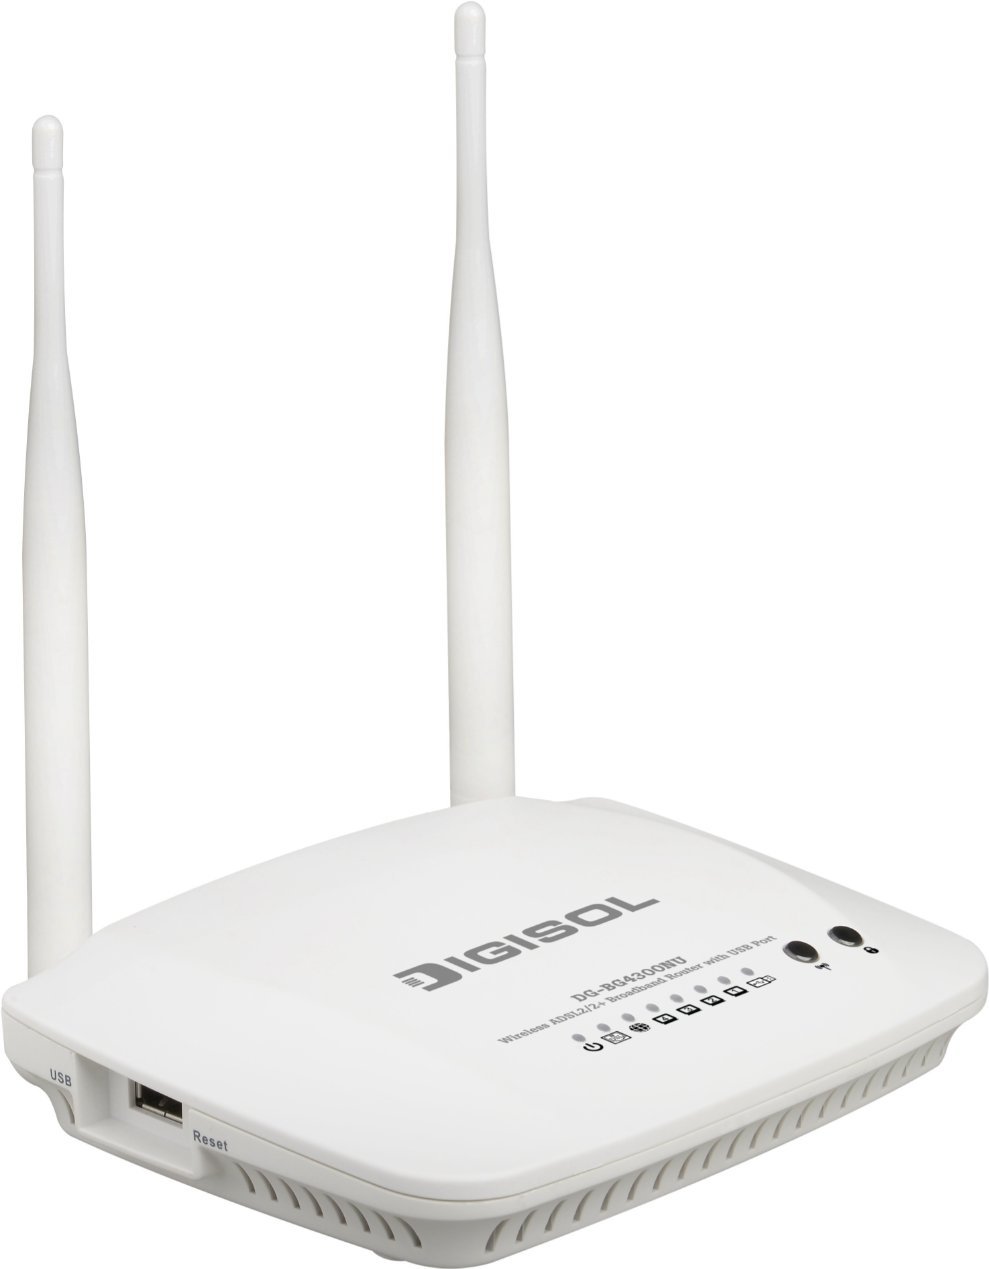 Best price on Digisol DG-BG4300NU 300Mbps Wireless Router in India